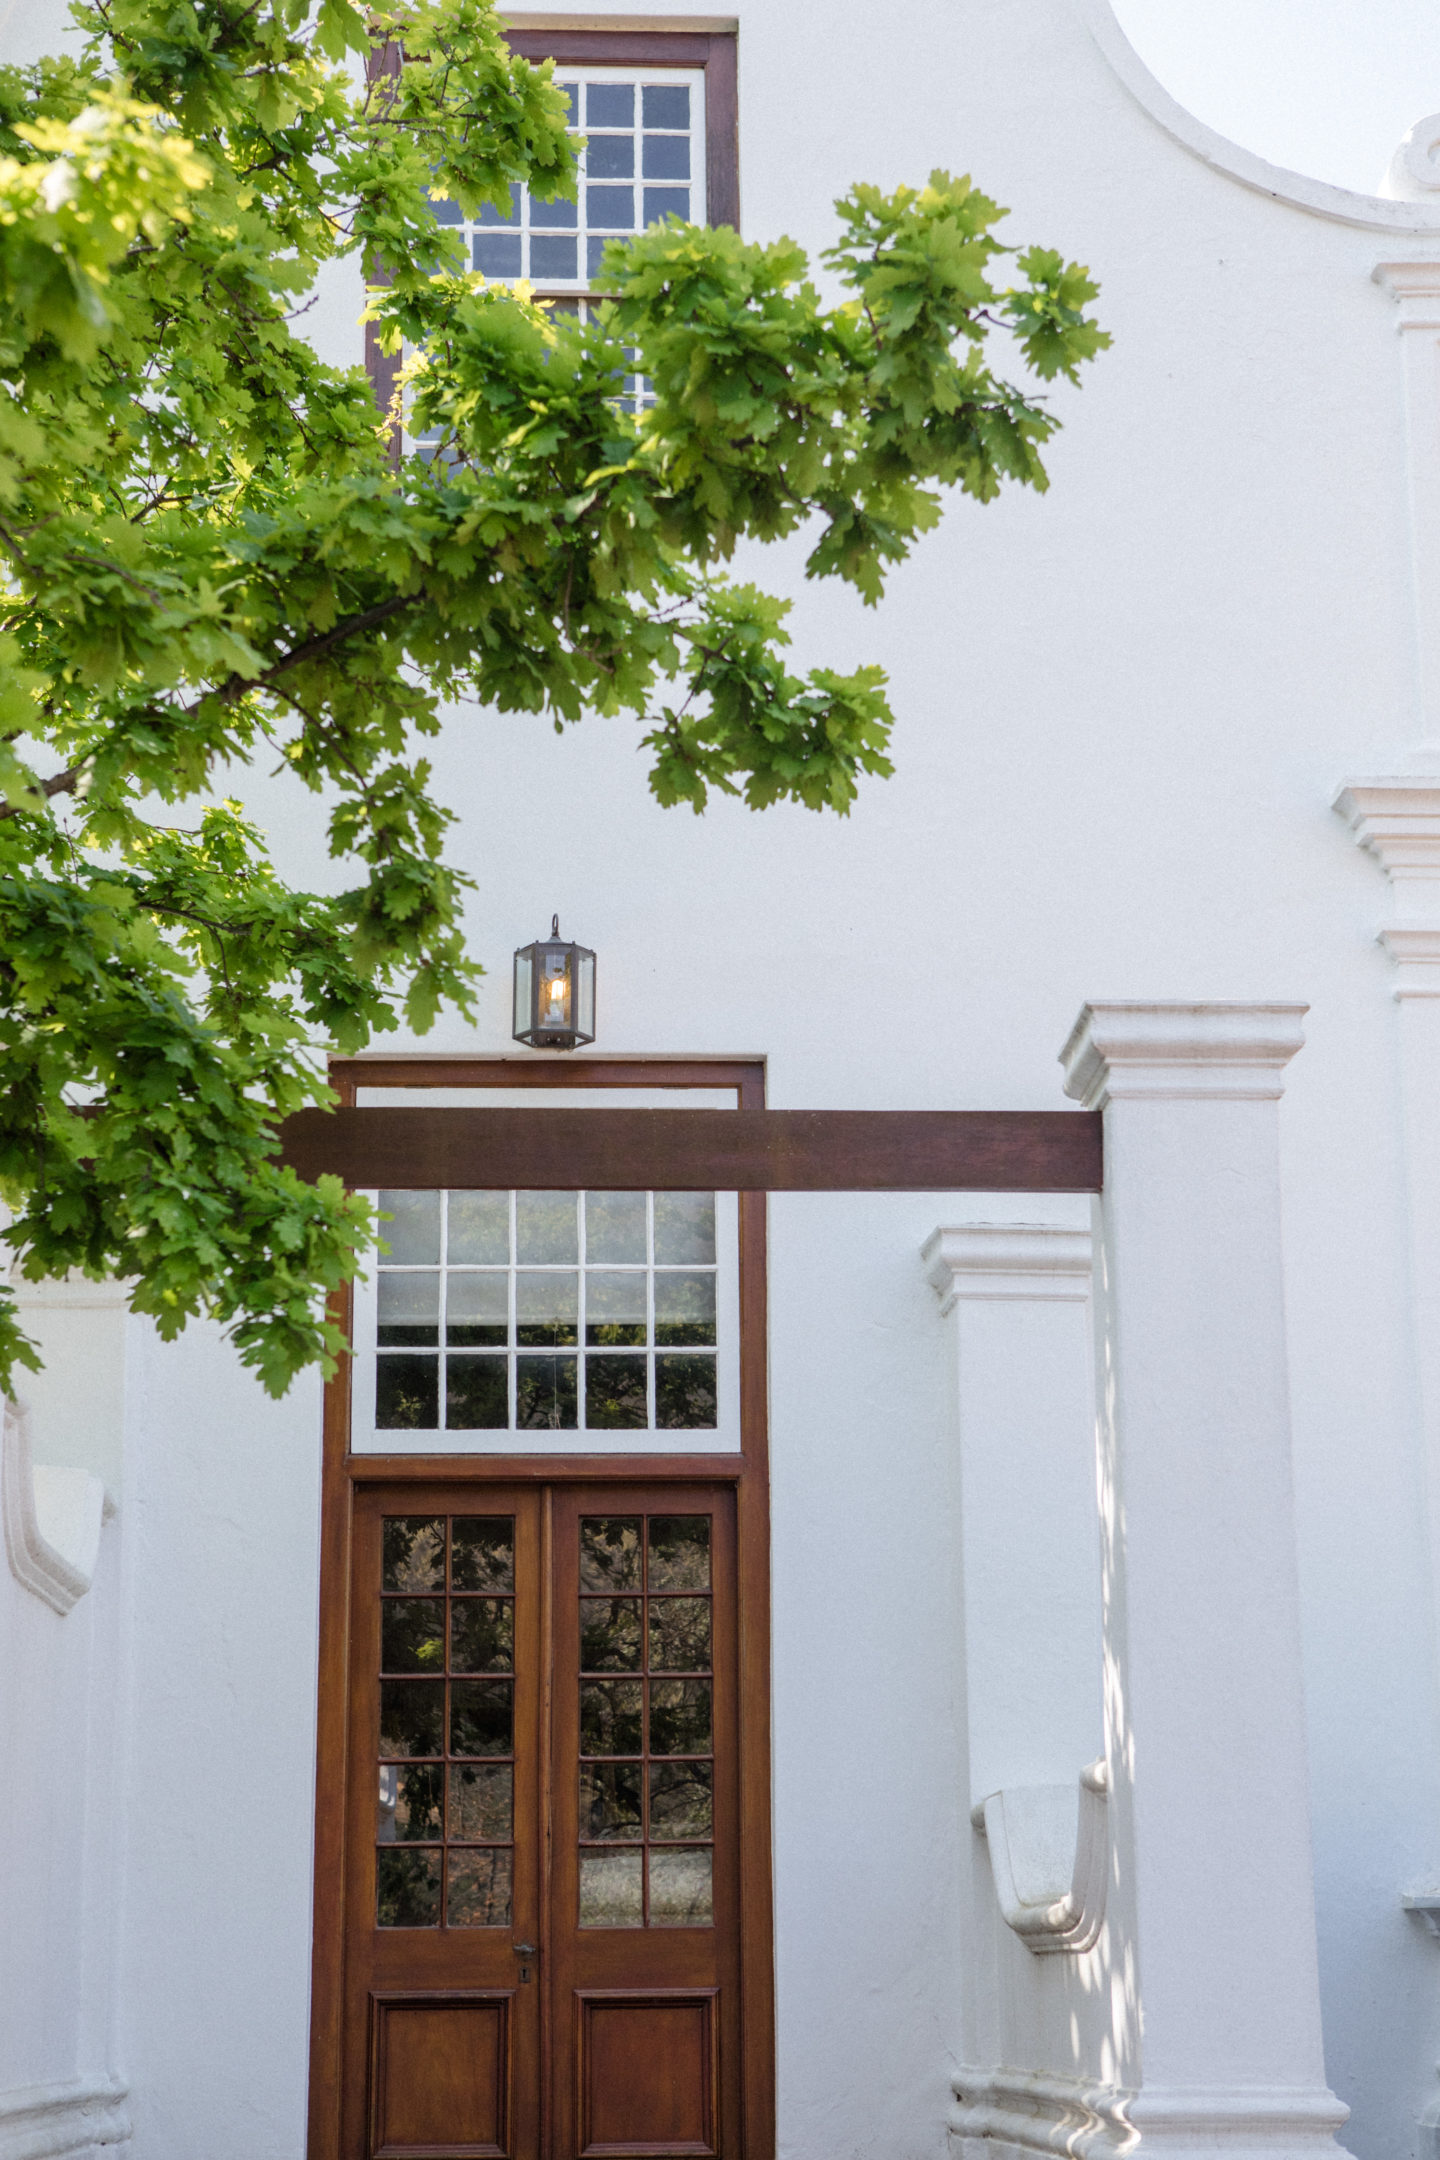 A Weekend in Stellenbosch